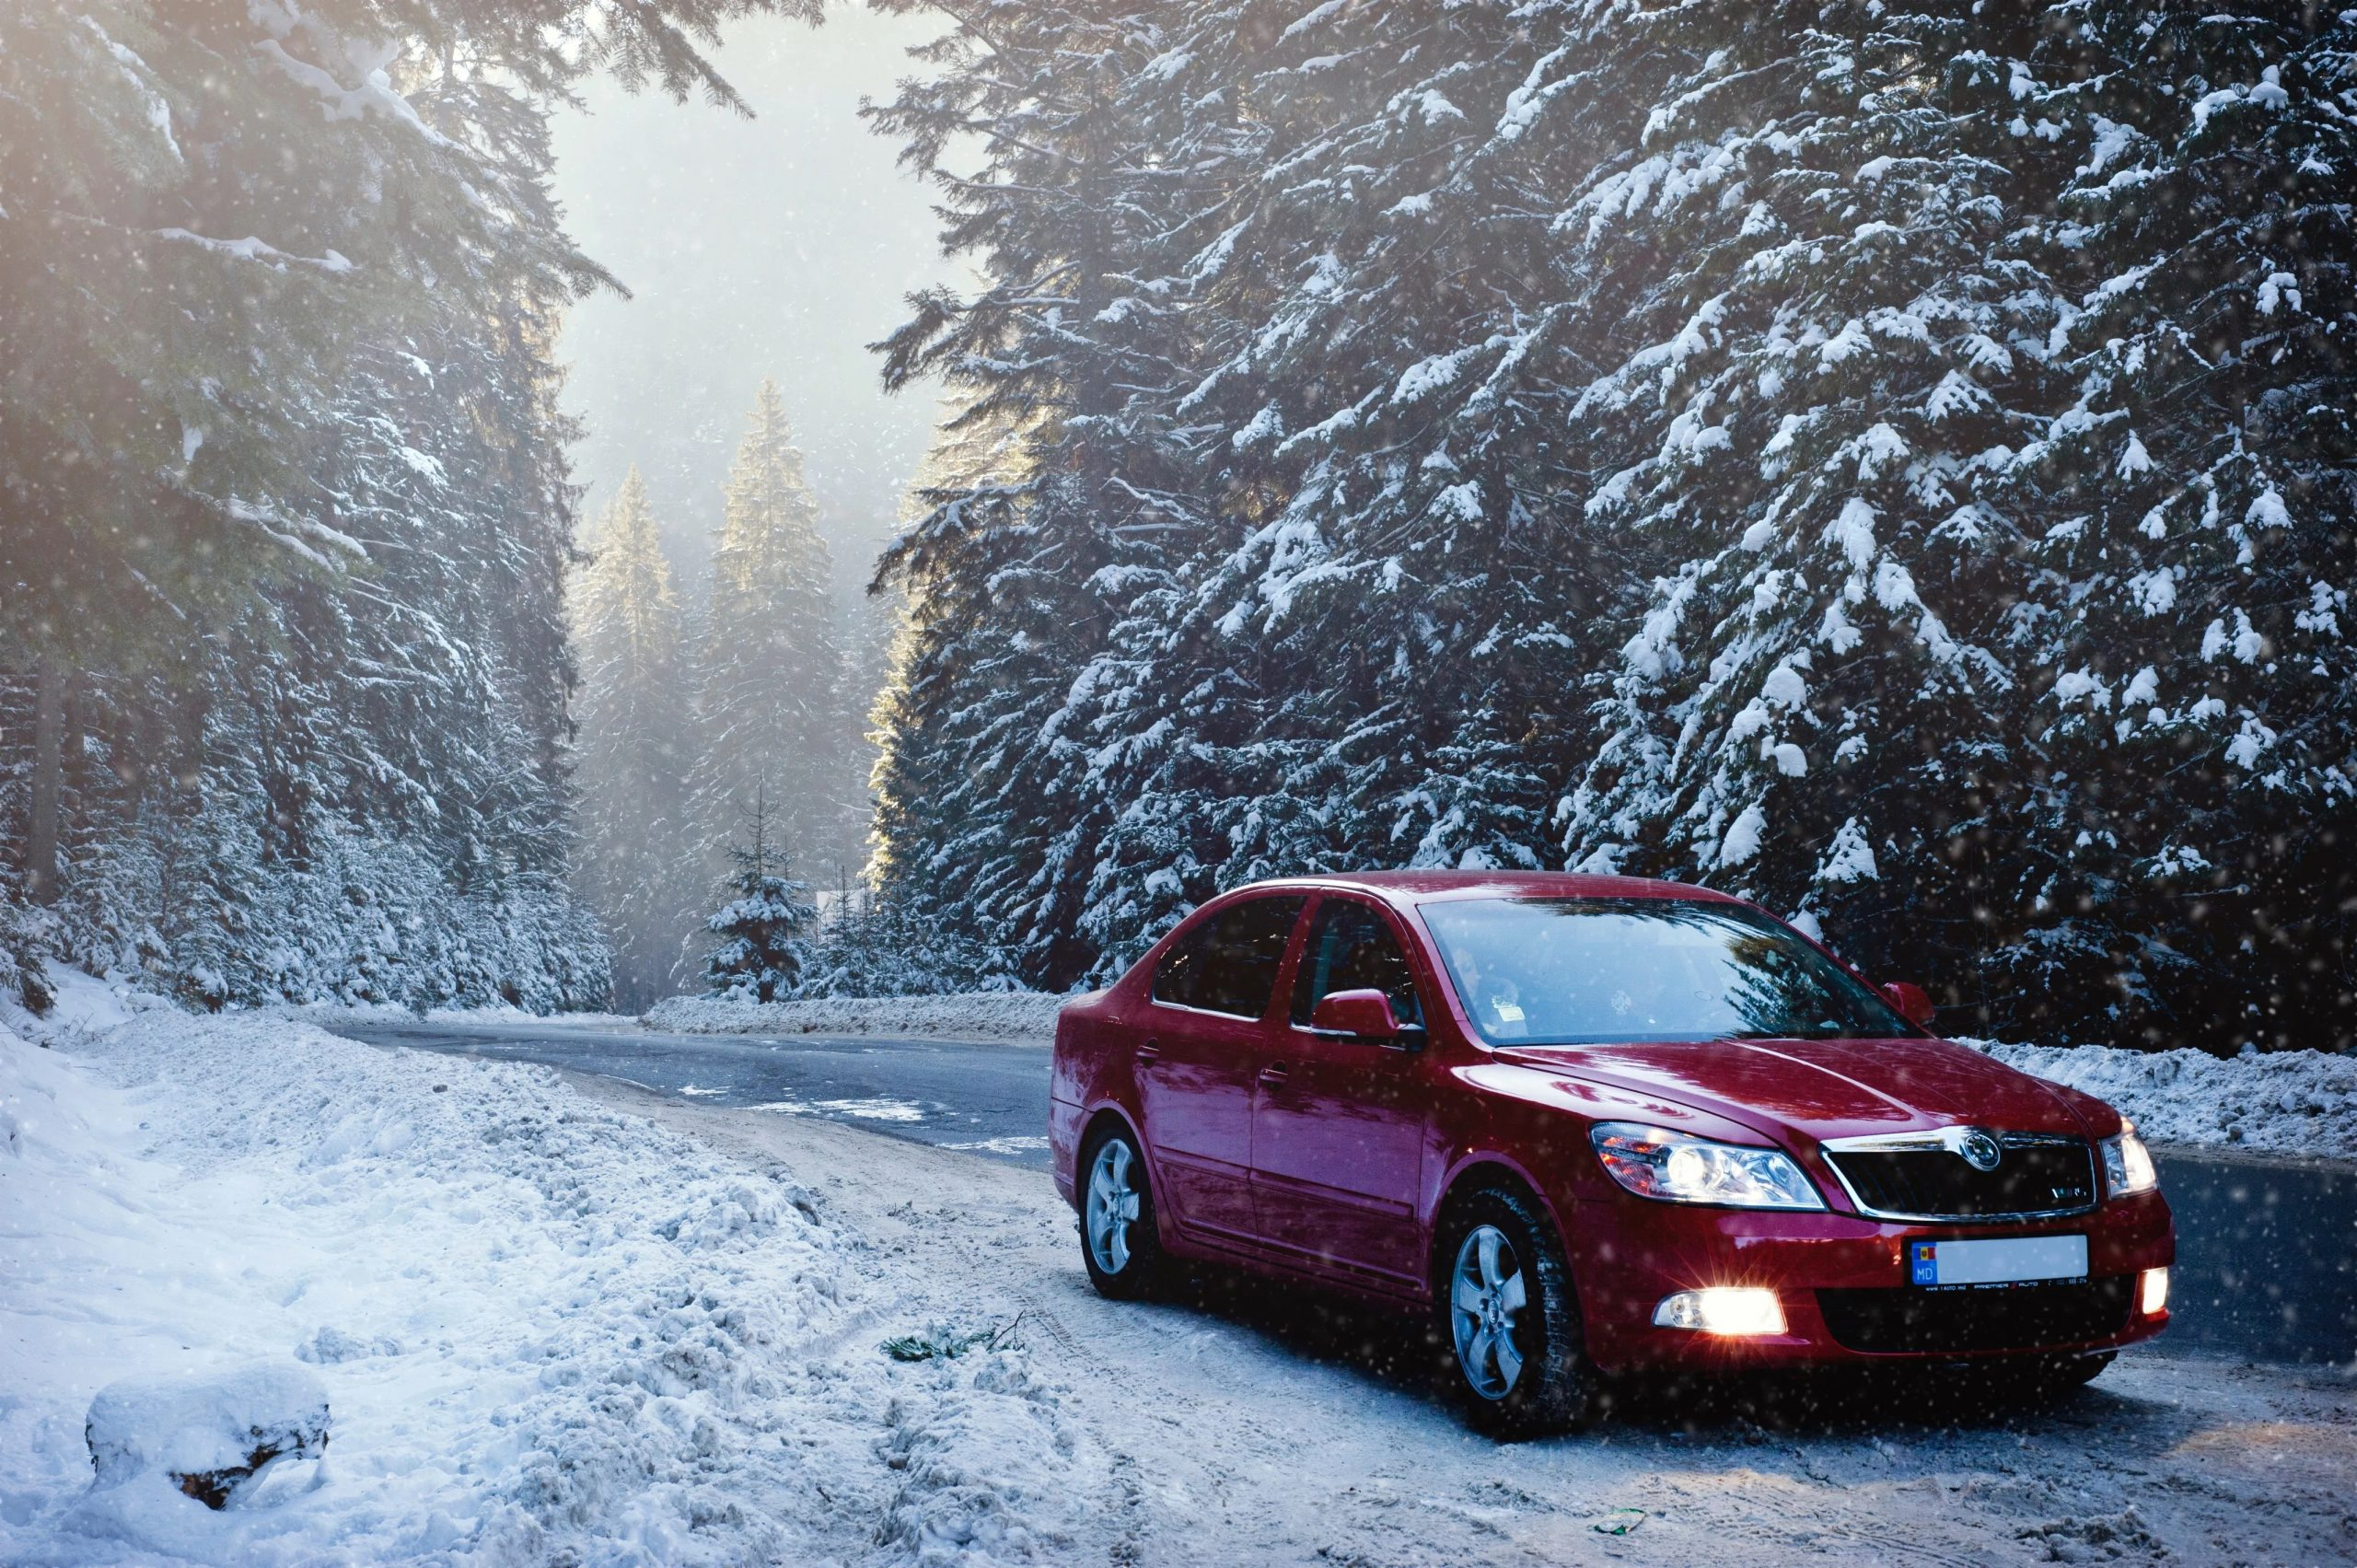 How to Get Your Vehicle Winter Ready